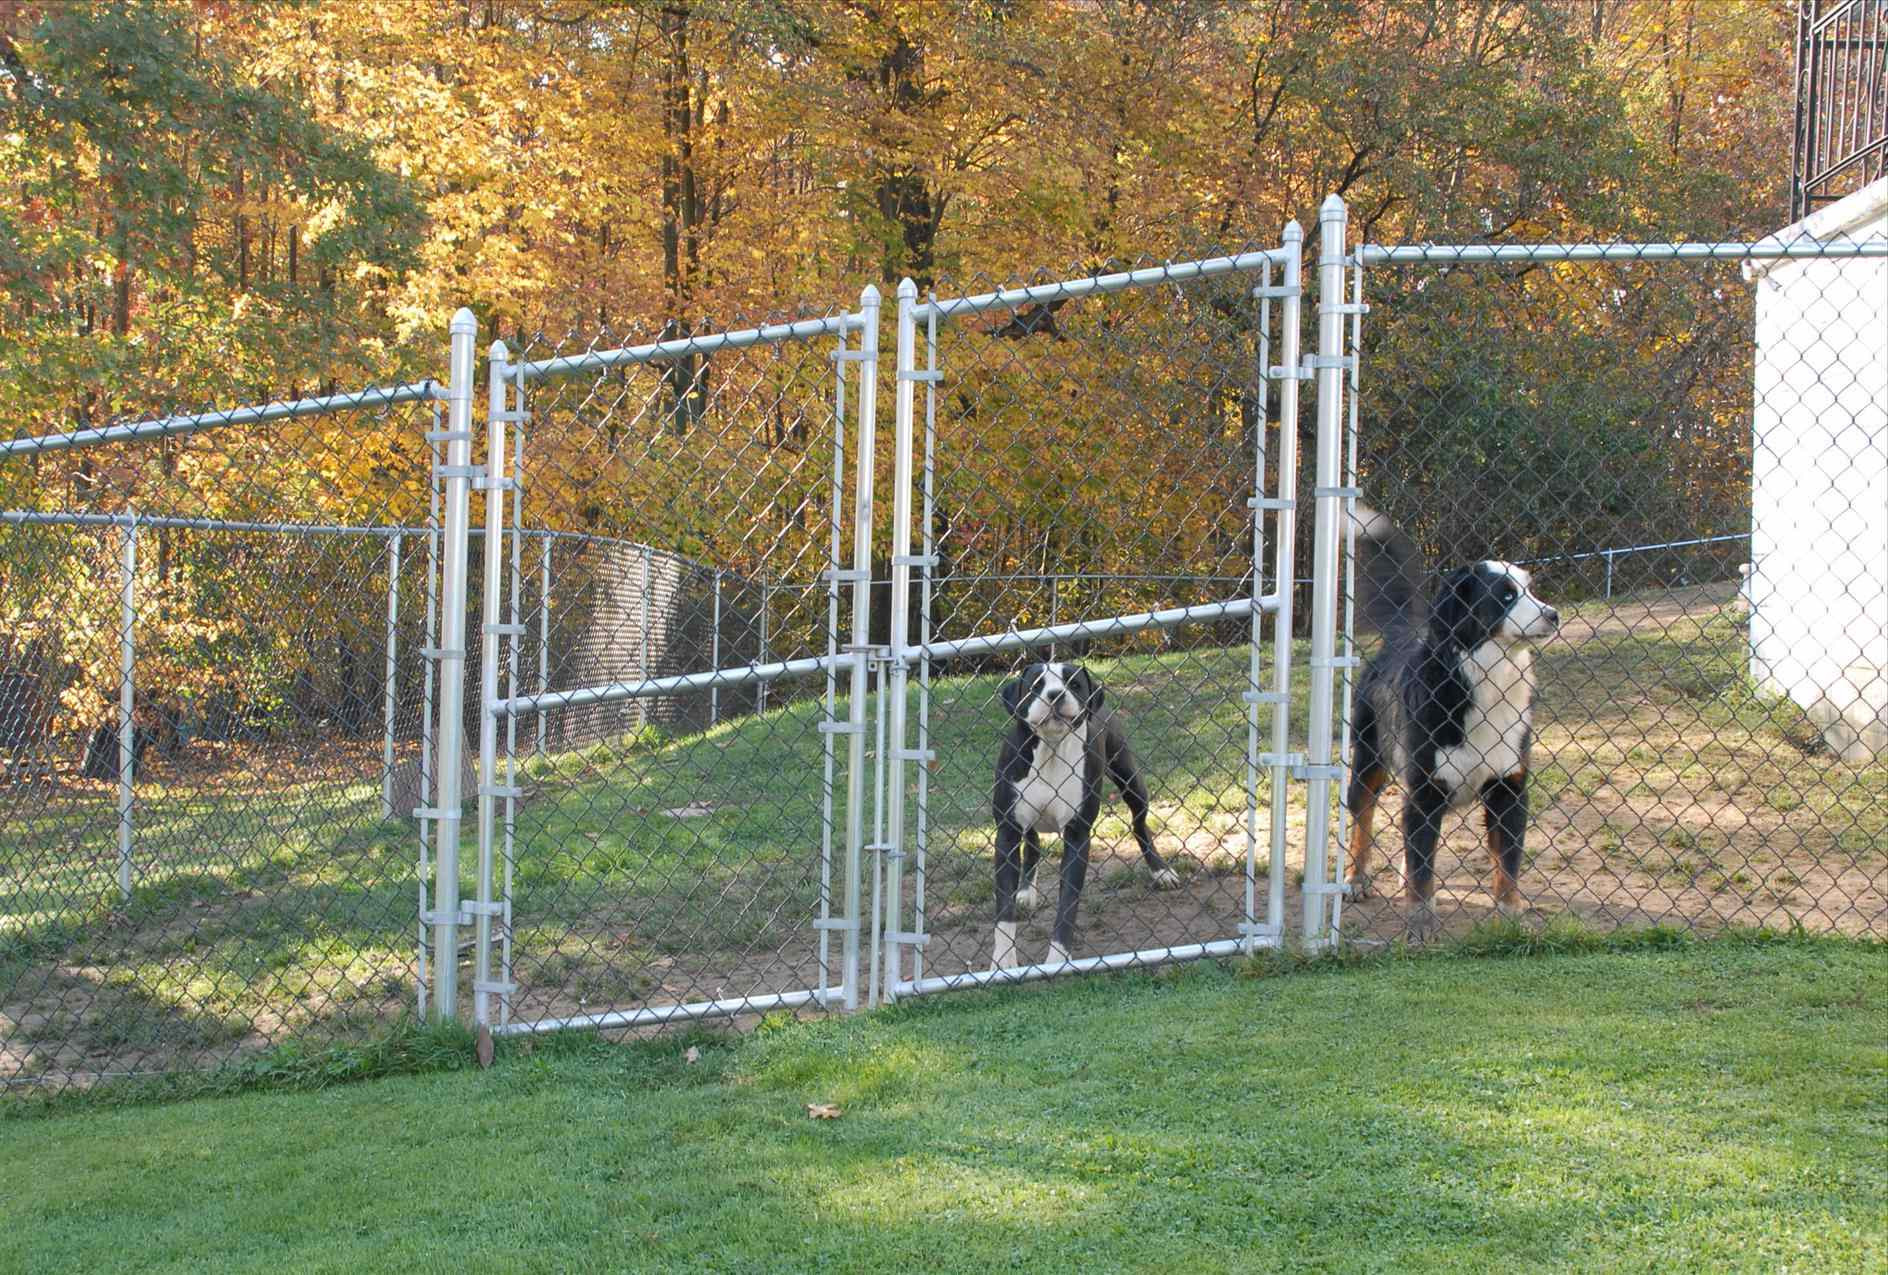 Best ideas about Cheap DIY Fencing For Dogs . Save or Pin Cheap Fence Ideas For Dogs In DIY Reusable And Portable Now.